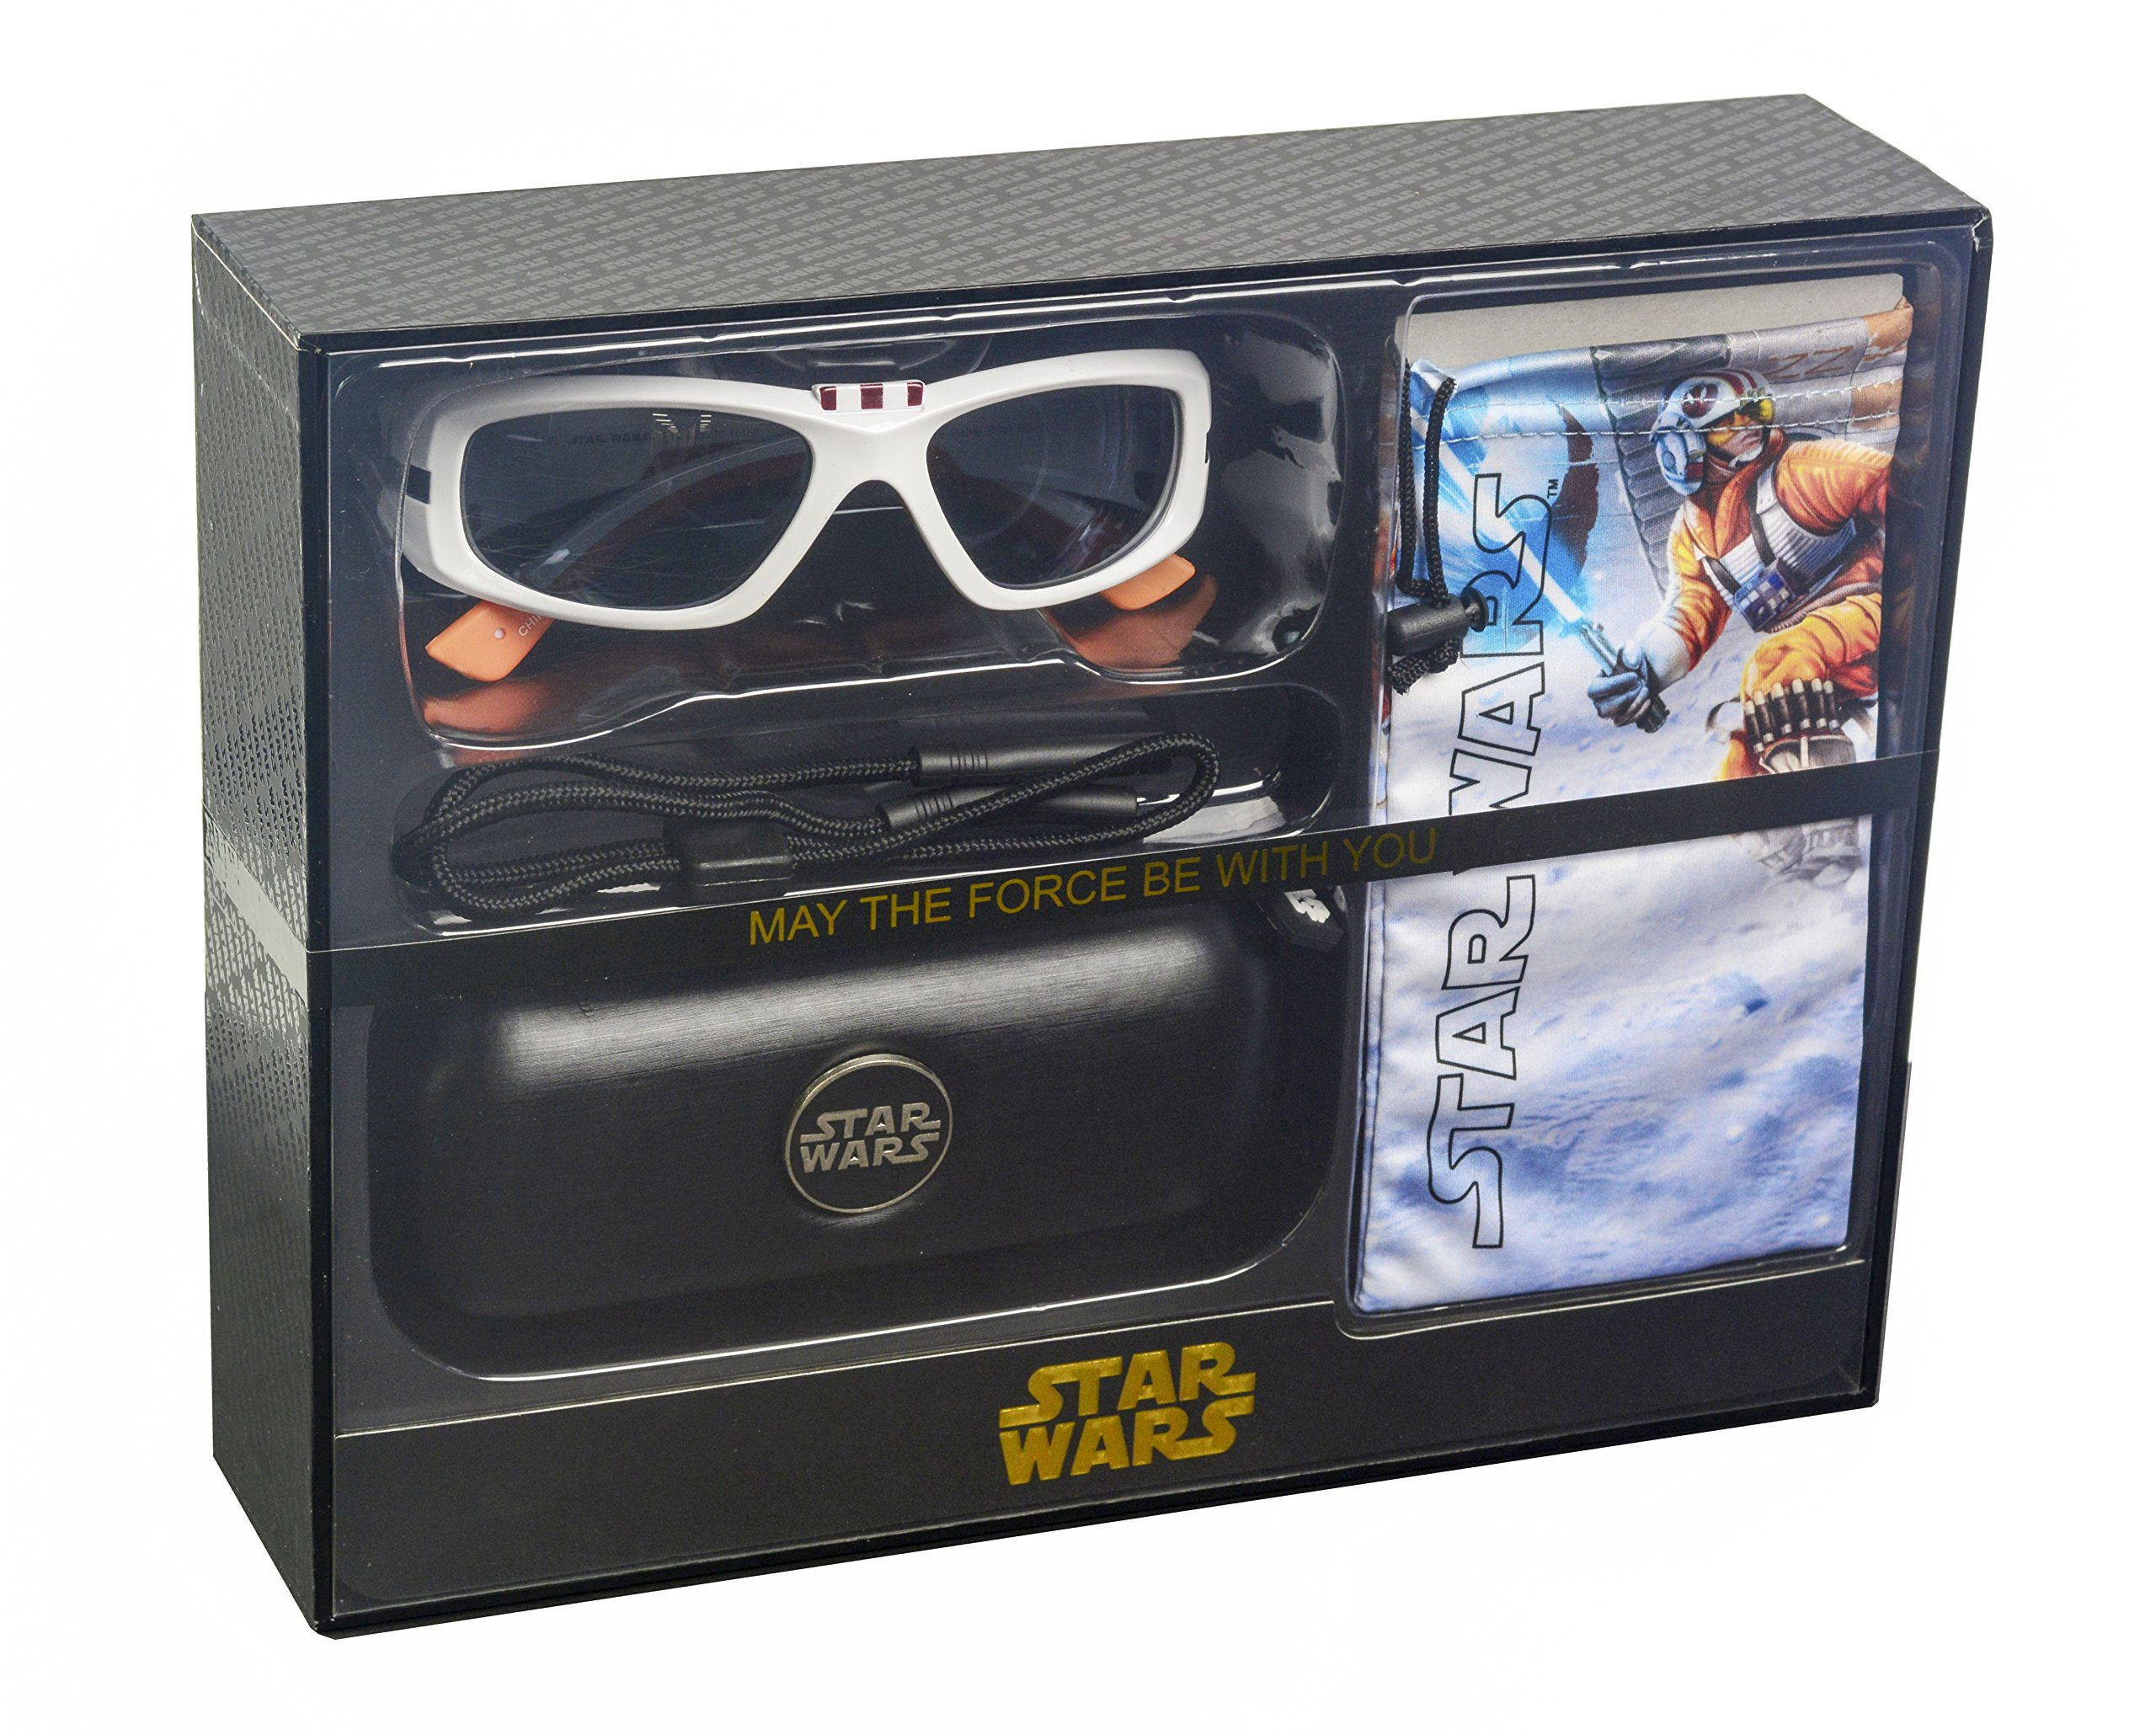 Star Wars Foster Grant Sunglasses Gift Set Rebel Pilot